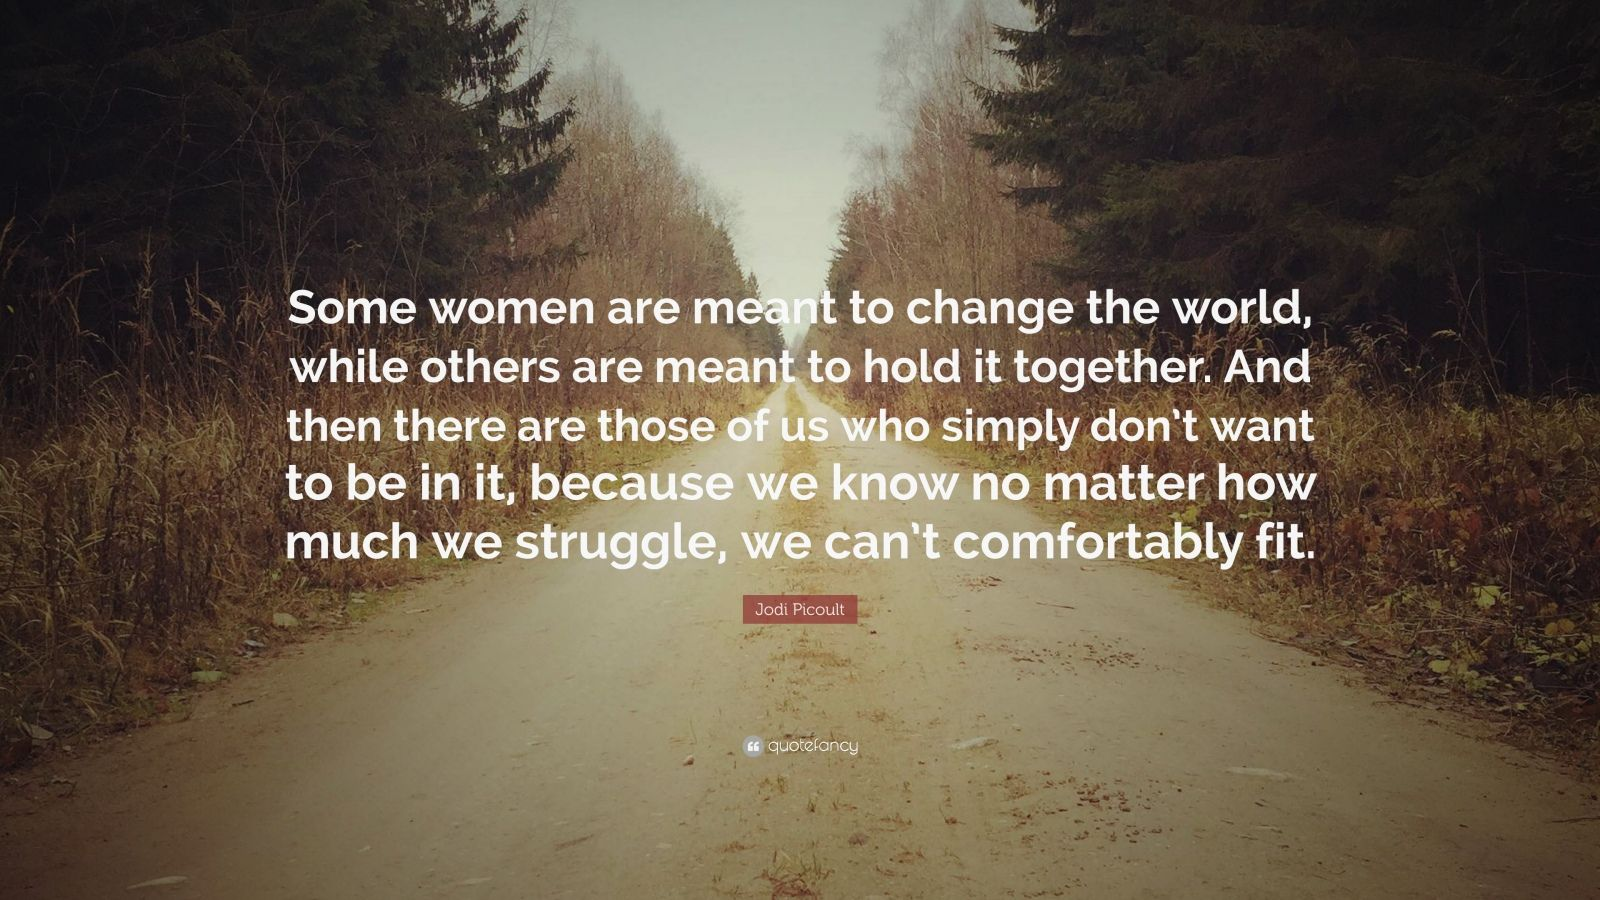 """Jodi Picoult Quote: """"Some women are meant to change the world, while others are meant to hold it together. And then there are those of us who simply don't want to be in it, because we know no matter how much we struggle, we can't comfortably fit."""""""